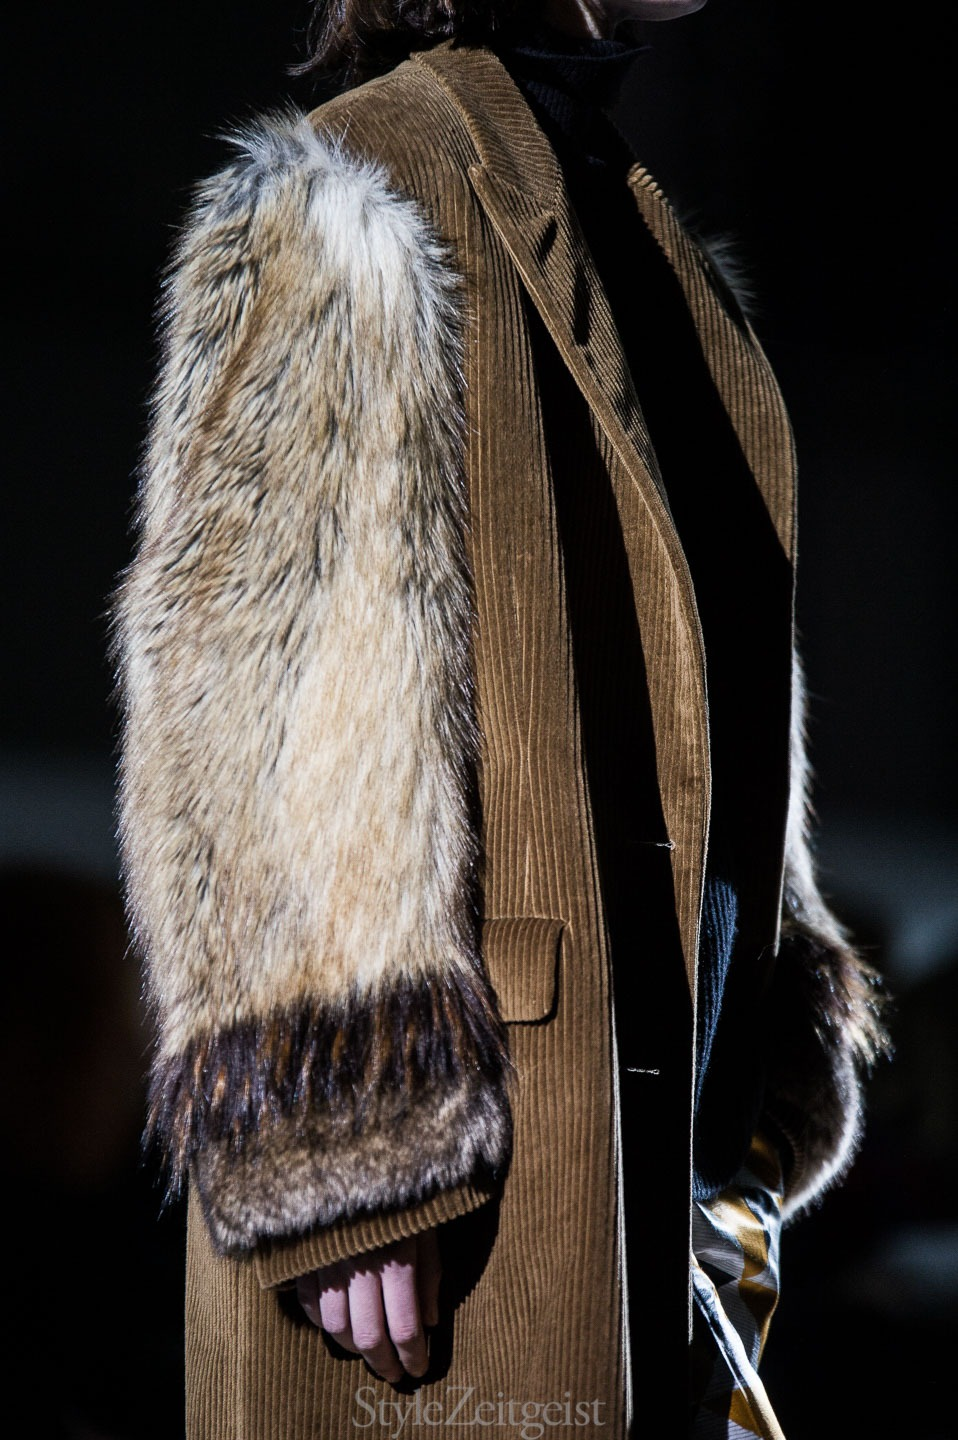 StyleZeitgeist Dries Van Noten F/W17 Women's - Paris Fashion    StyleZeitgeist Dries Van Noten F/W17 Women's - Paris Fashion    StyleZeitgeist Dries Van Noten F/W17 Women's - Paris Fashion    StyleZeitgeist Dries Van Noten F/W17 Women's - Paris Fashion    StyleZeitgeist Dries Van Noten F/W17 Women's - Paris Fashion    StyleZeitgeist Dries Van Noten F/W17 Women's - Paris Fashion    StyleZeitgeist Dries Van Noten F/W17 Women's - Paris Fashion